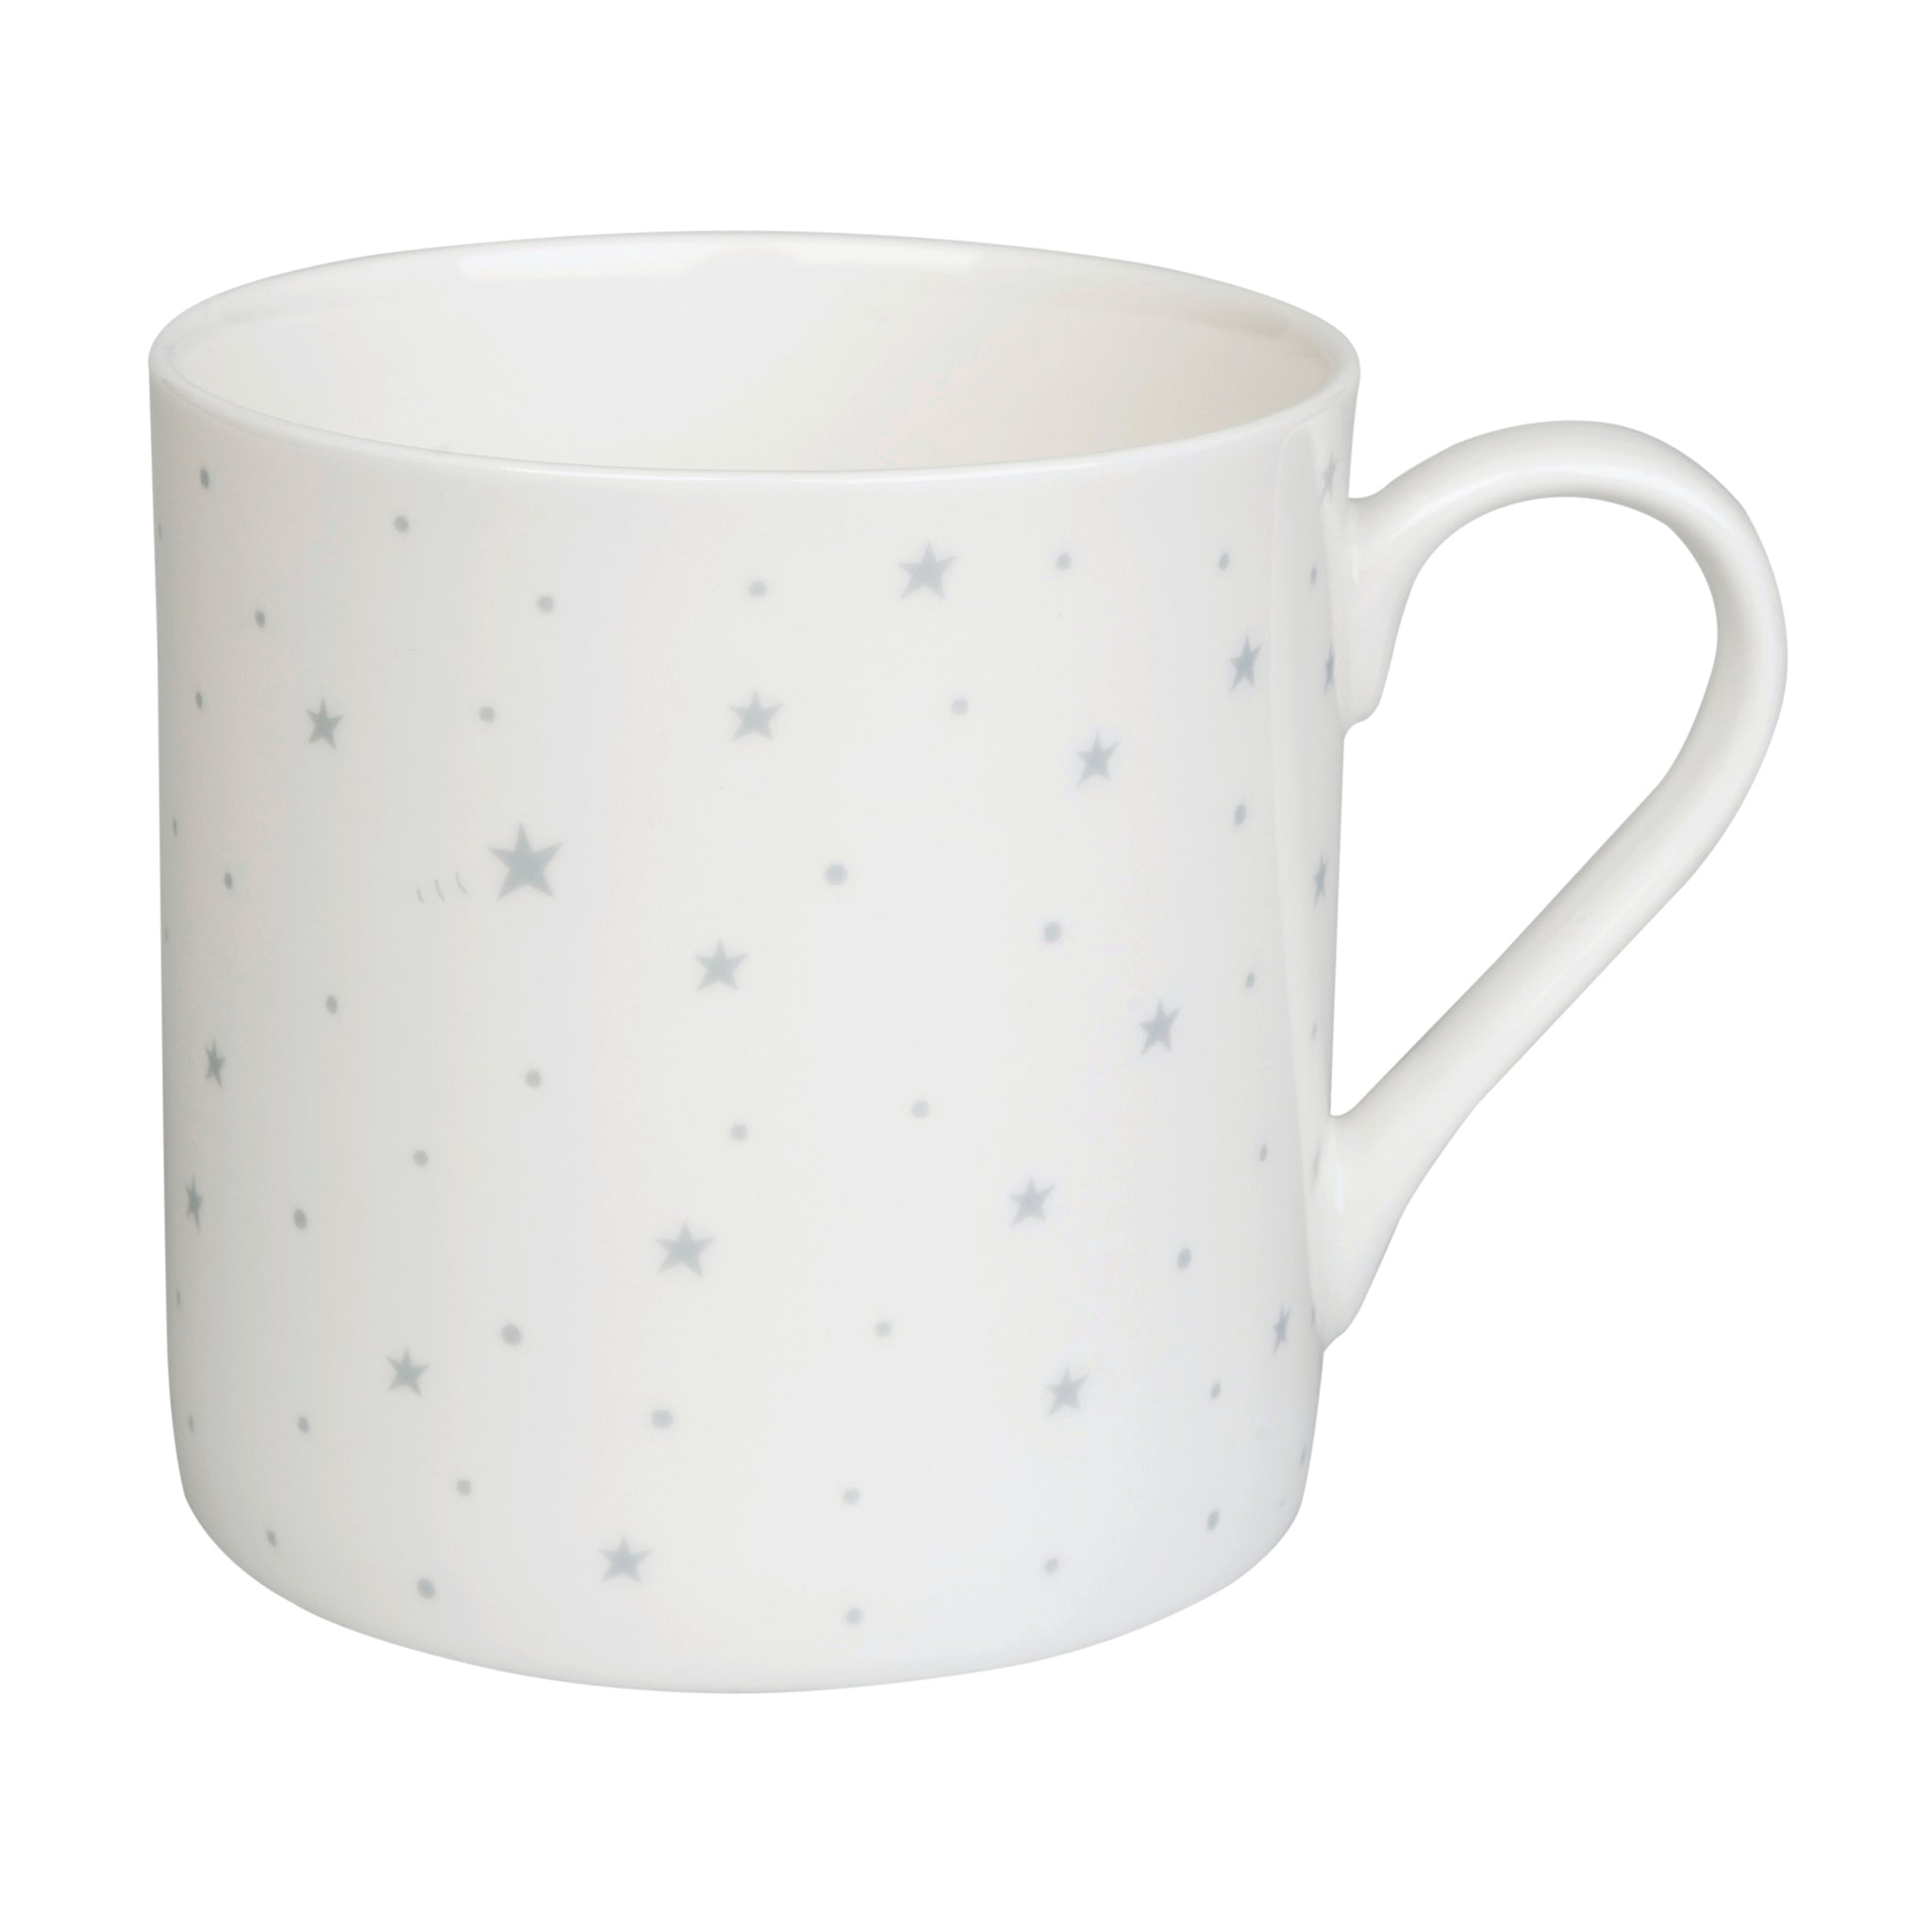 Starry Night White Mug